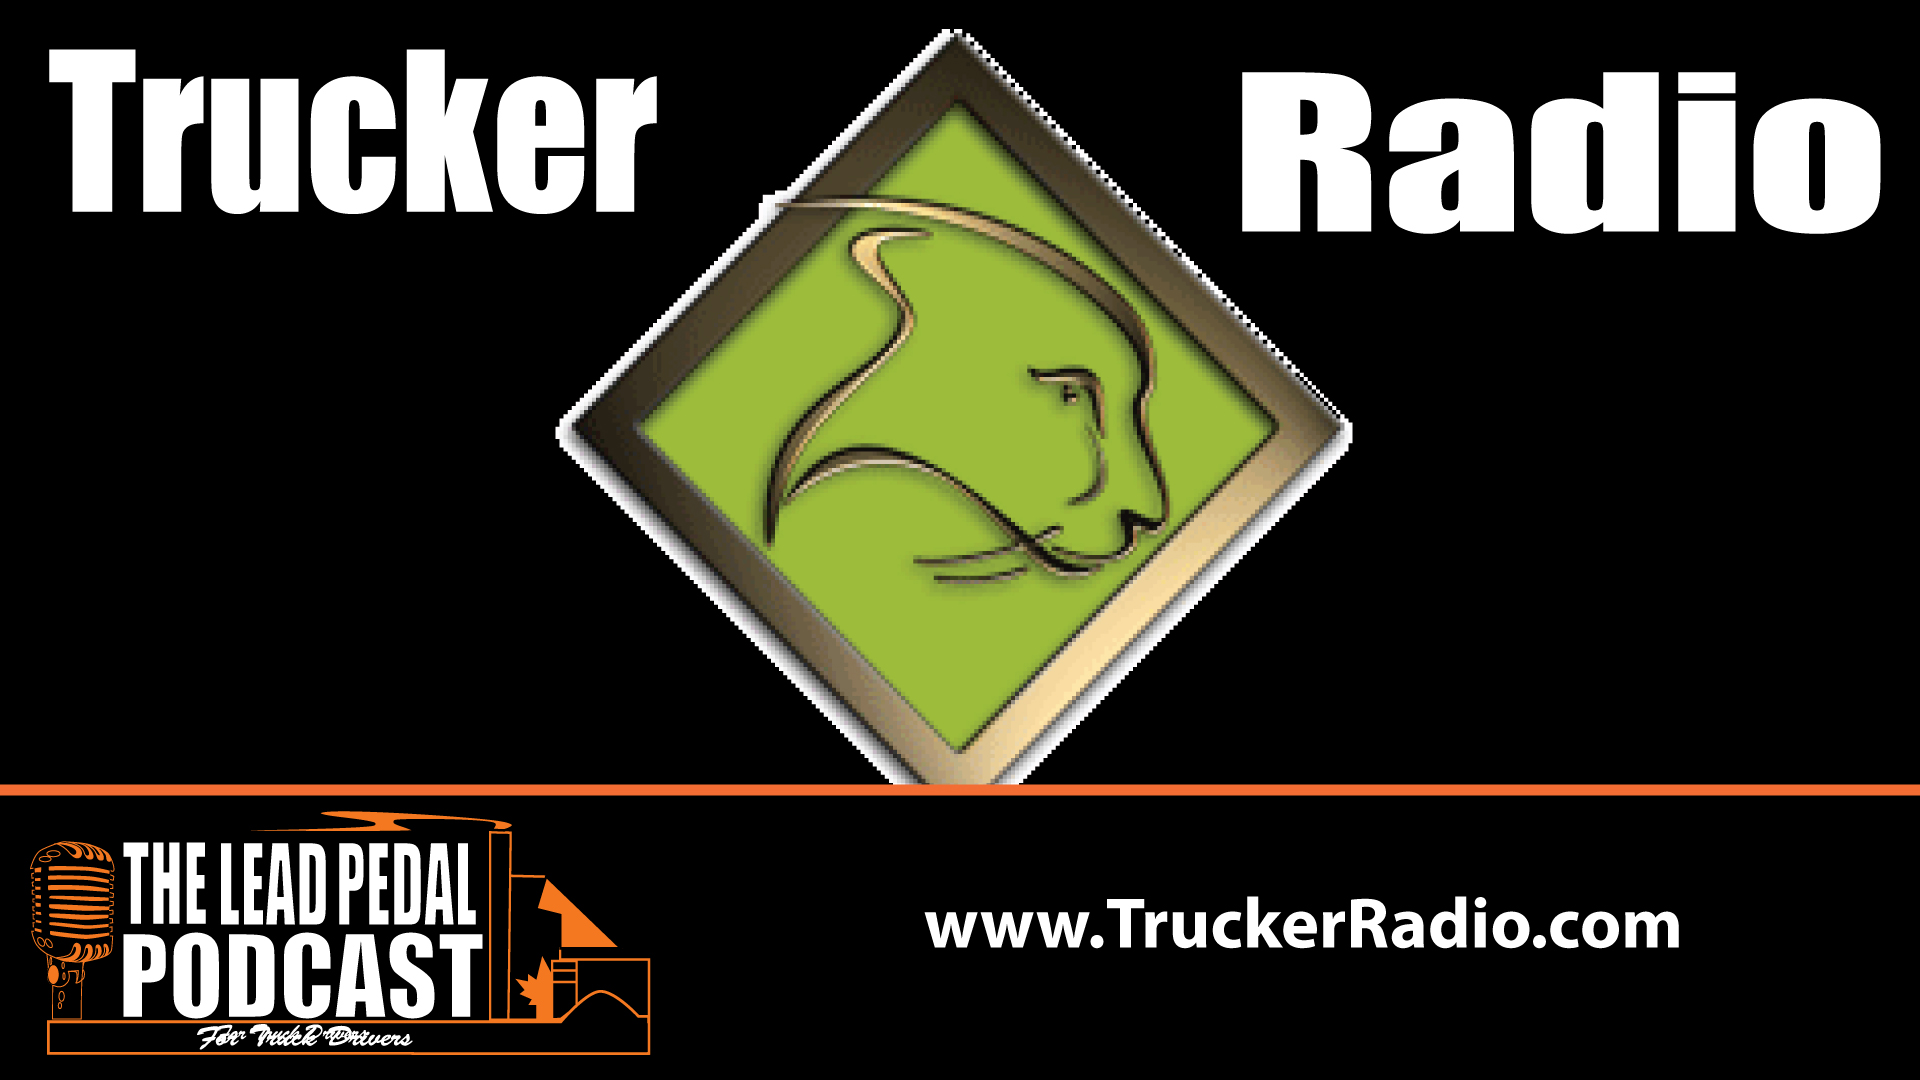 LP-Trucker-Radio-Podcast-Video-Cover-Image